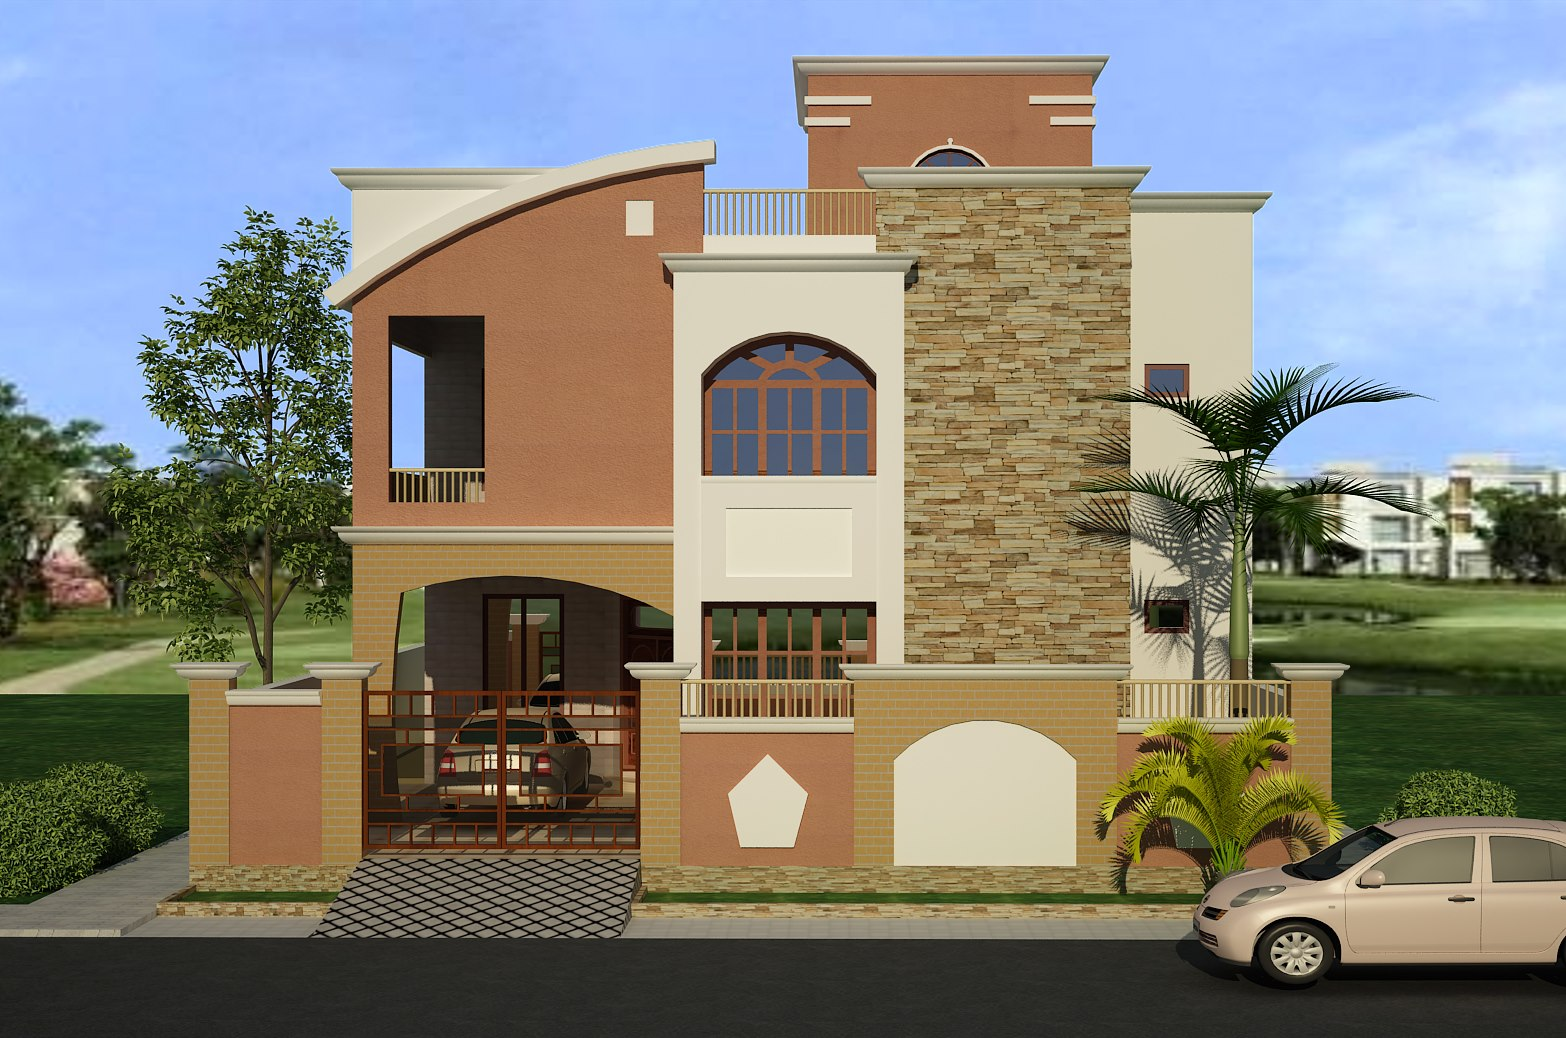 Front Elevation House Photo Gallery Houses Plans Designs House